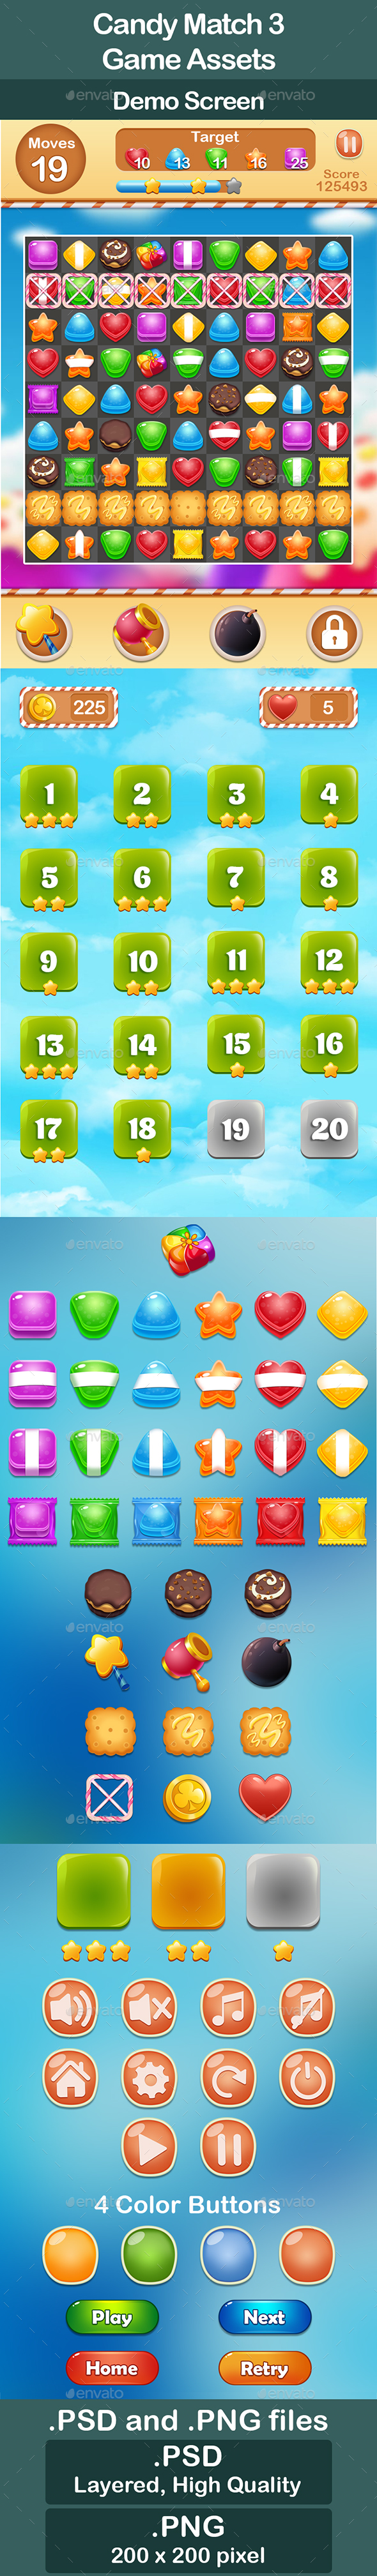 GraphicRiver Candy Match 3 Game Assets 21123928